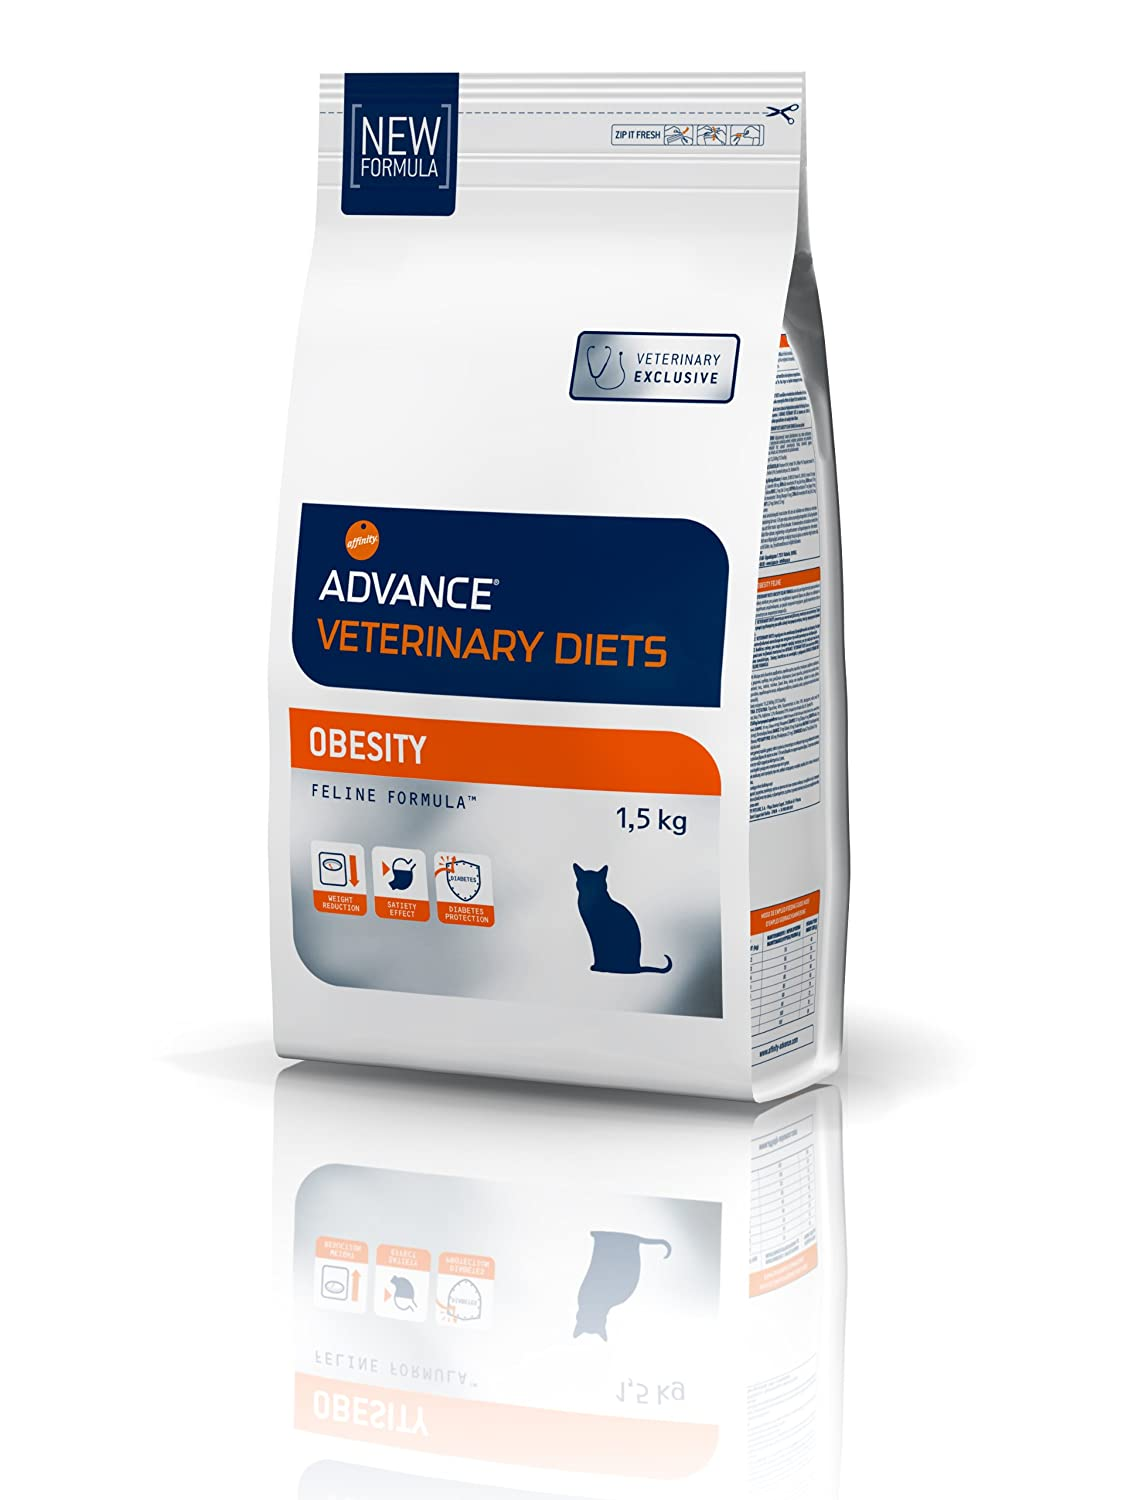 advance cat Food obesidad gato 1,5 kg + C756: Amazon.es: Productos para mascotas